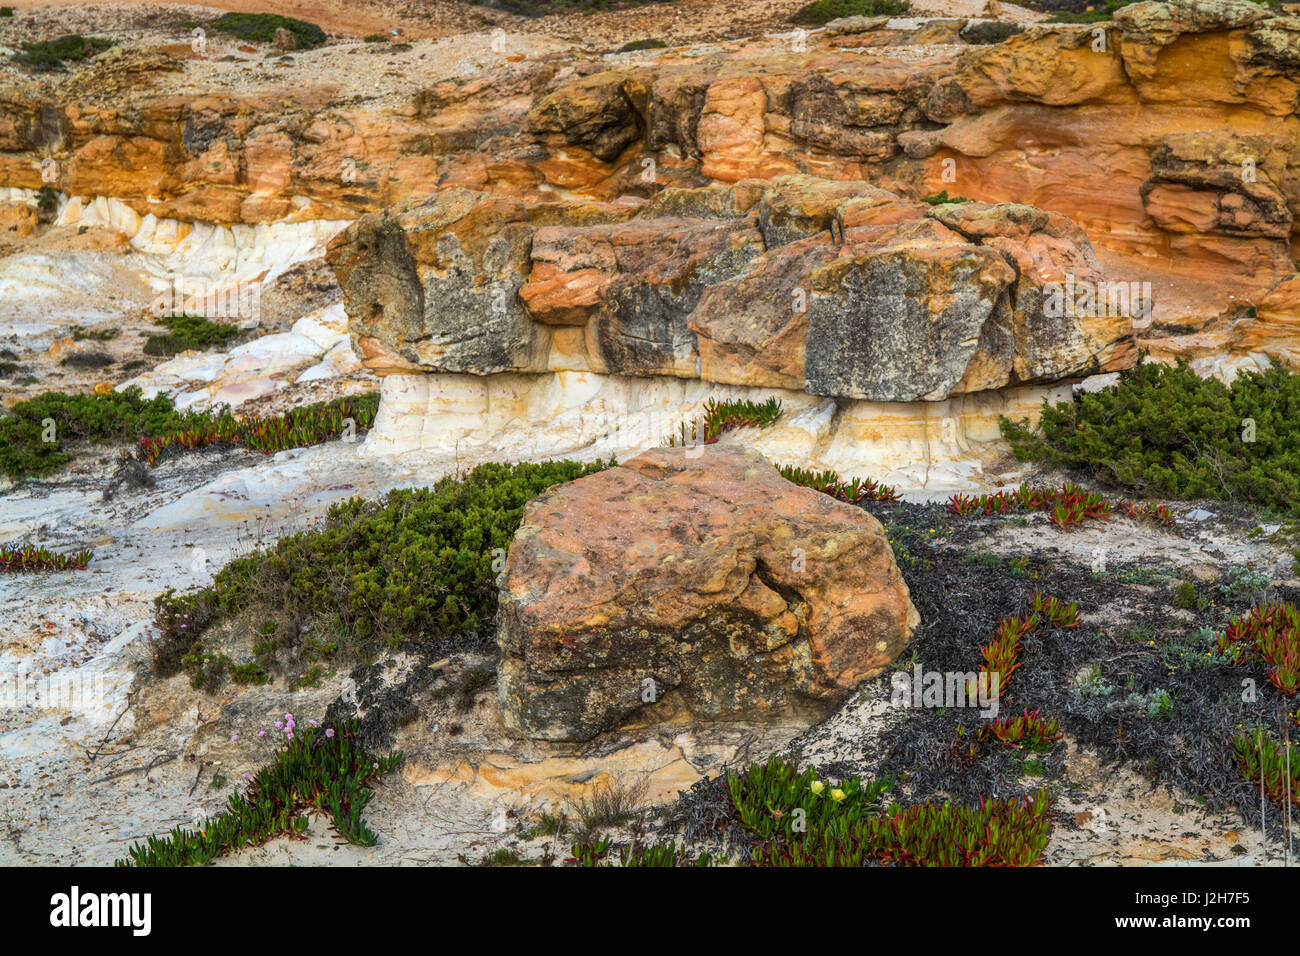 small rock formation in brown tones Stock Photo